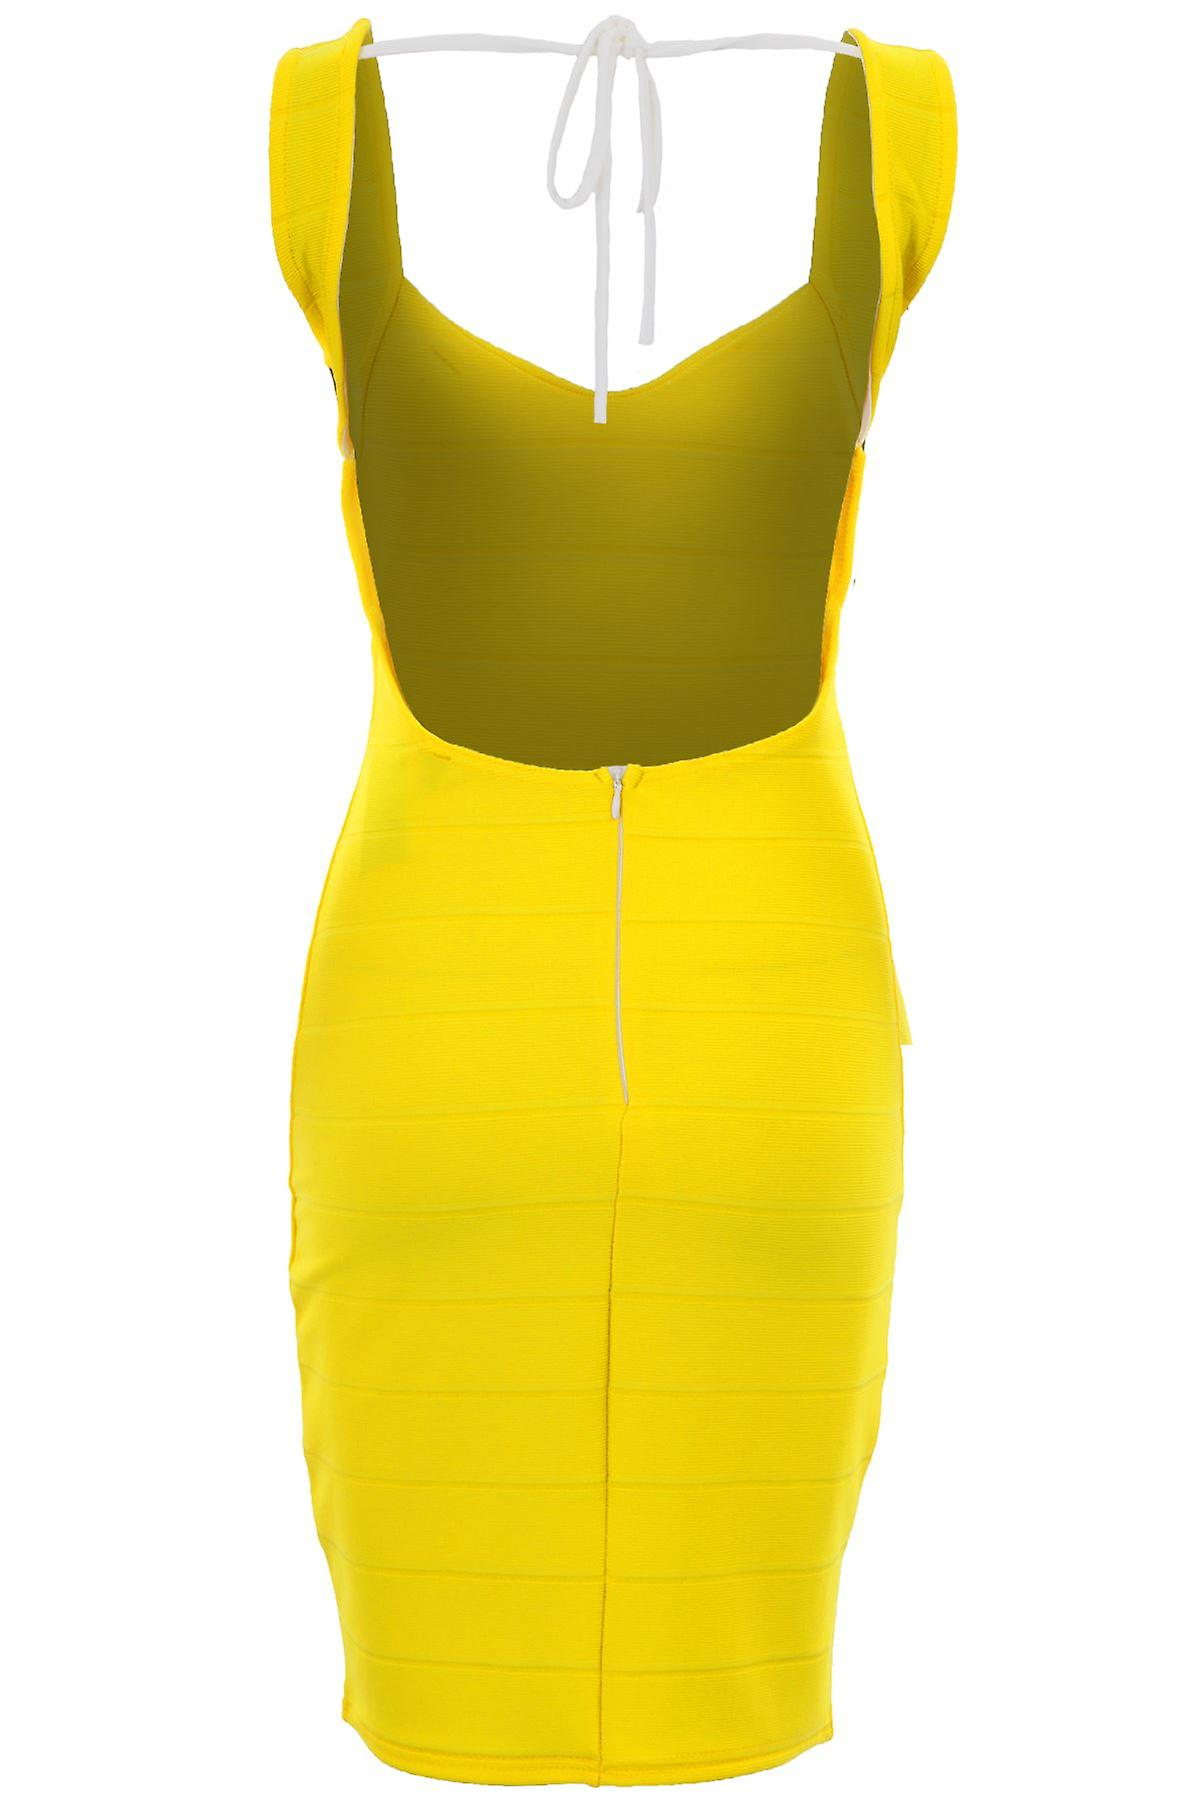 Ladies Celeb Charlotte Bandage Ribbed Backless Yellow Bodycon Sexy Dress